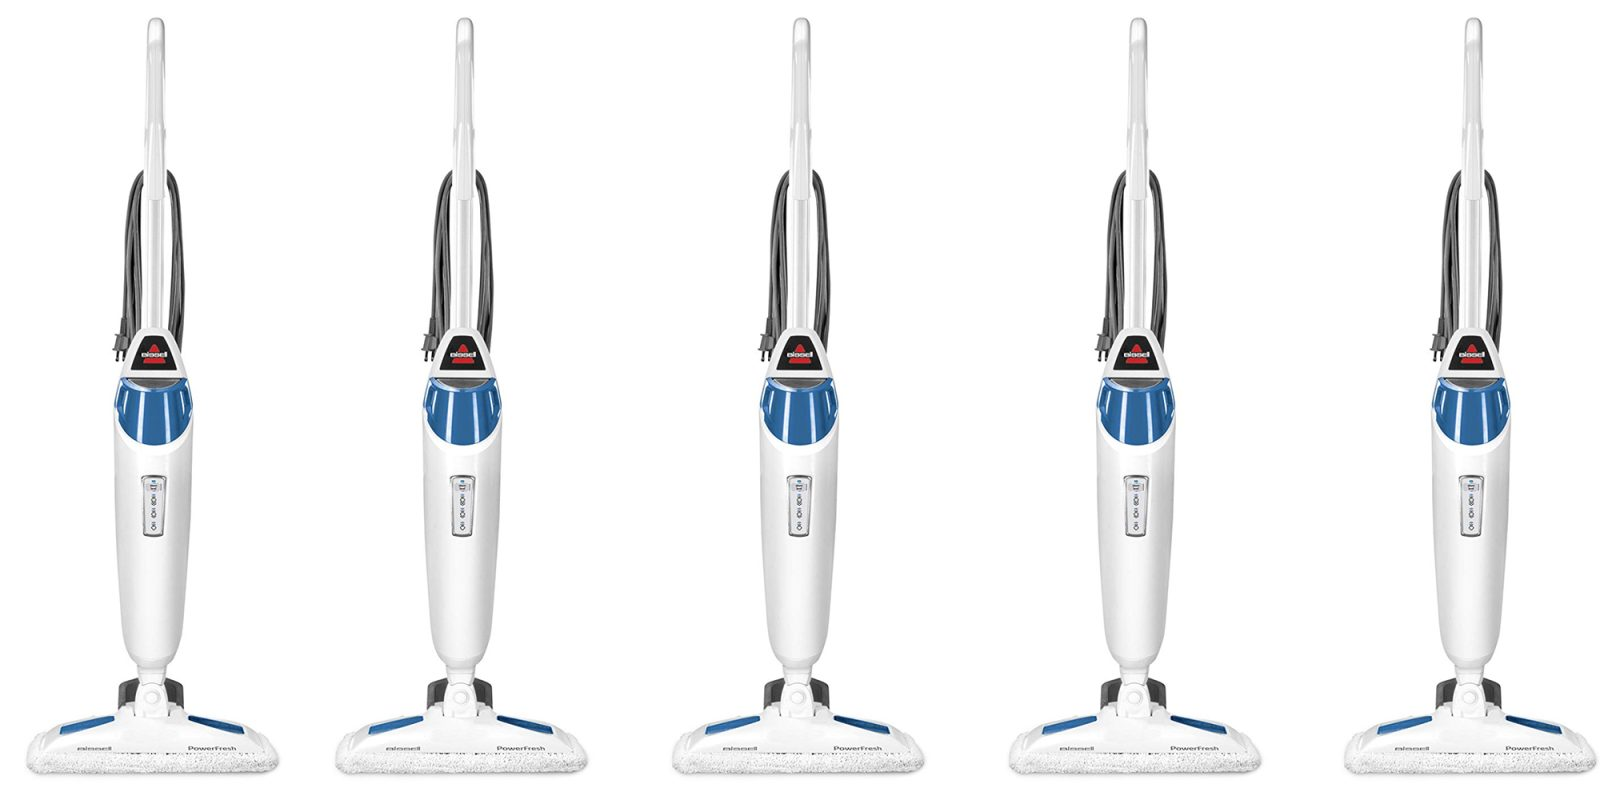 Take care of dirty floors w/ the $57 BISSELL PowerFresh